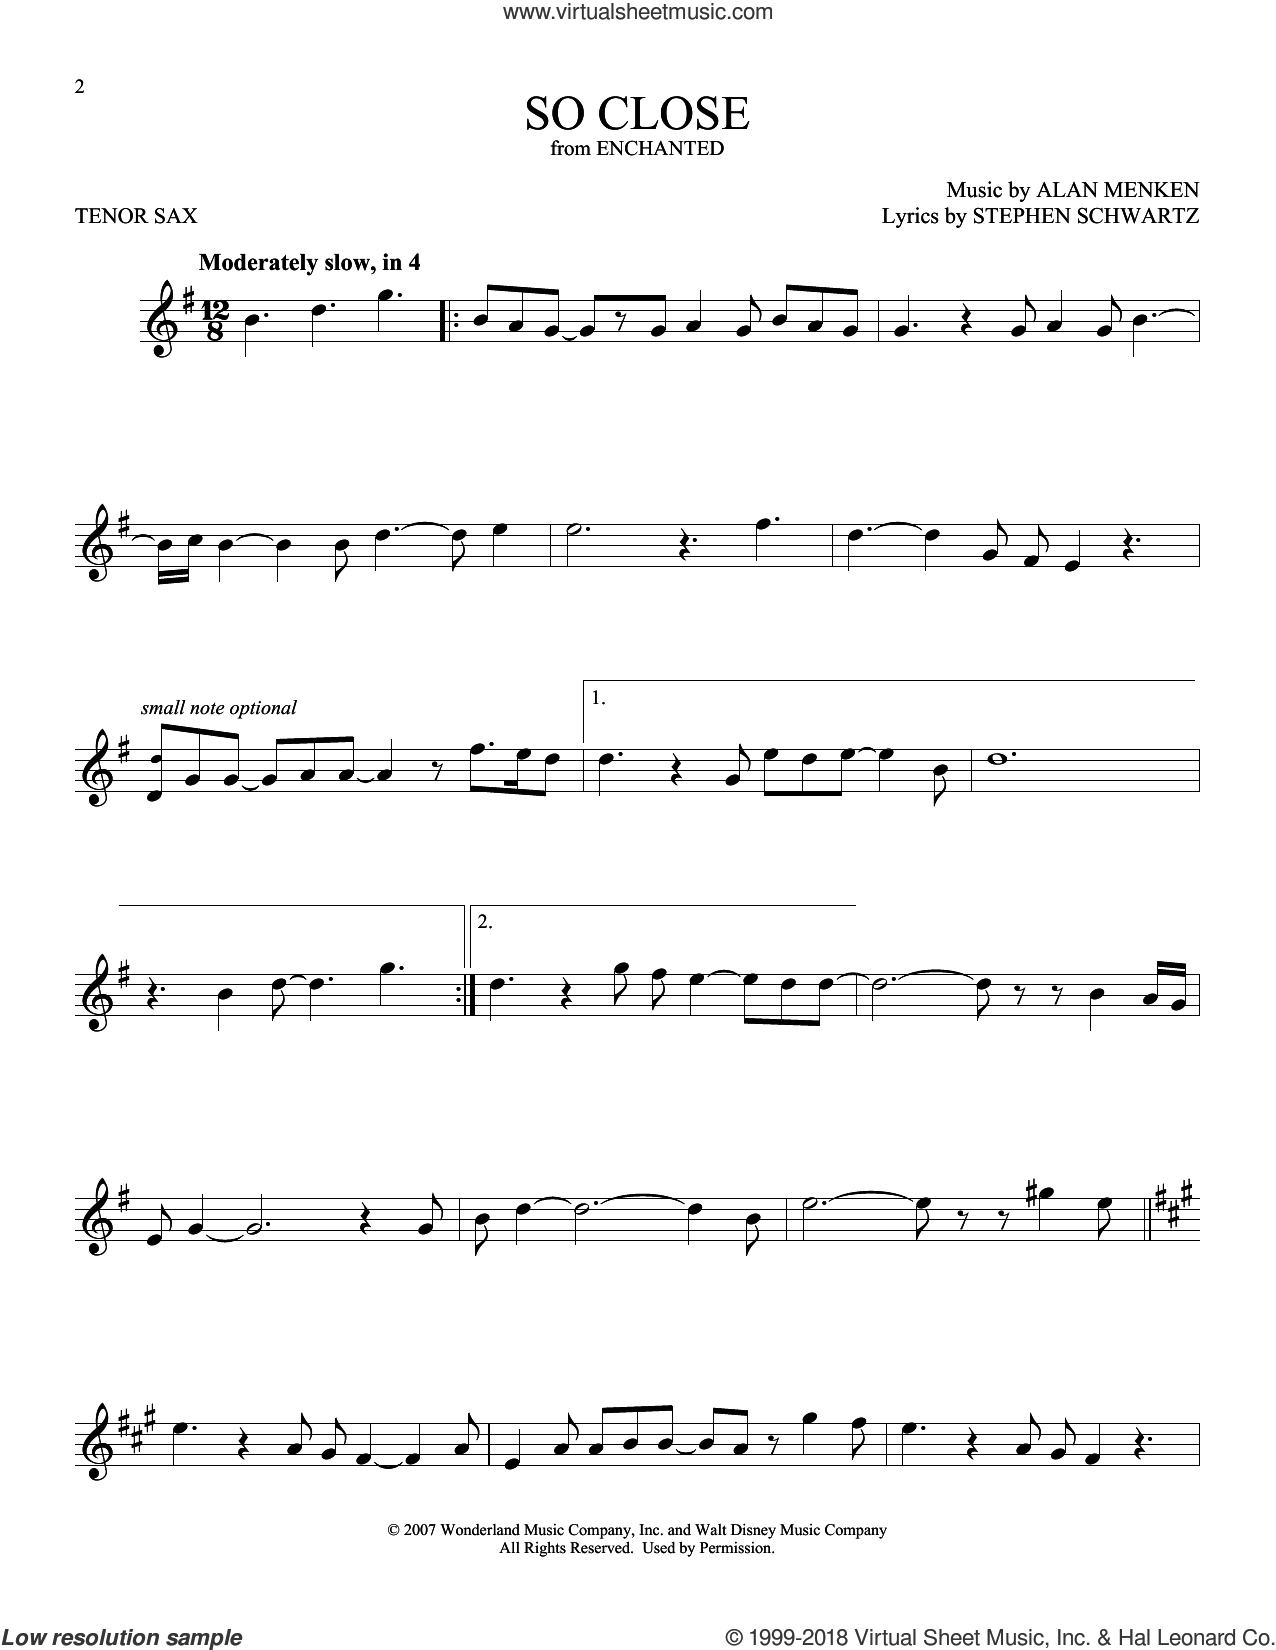 So Close sheet music for tenor saxophone solo by Alan Menken and Stephen Schwartz, intermediate skill level